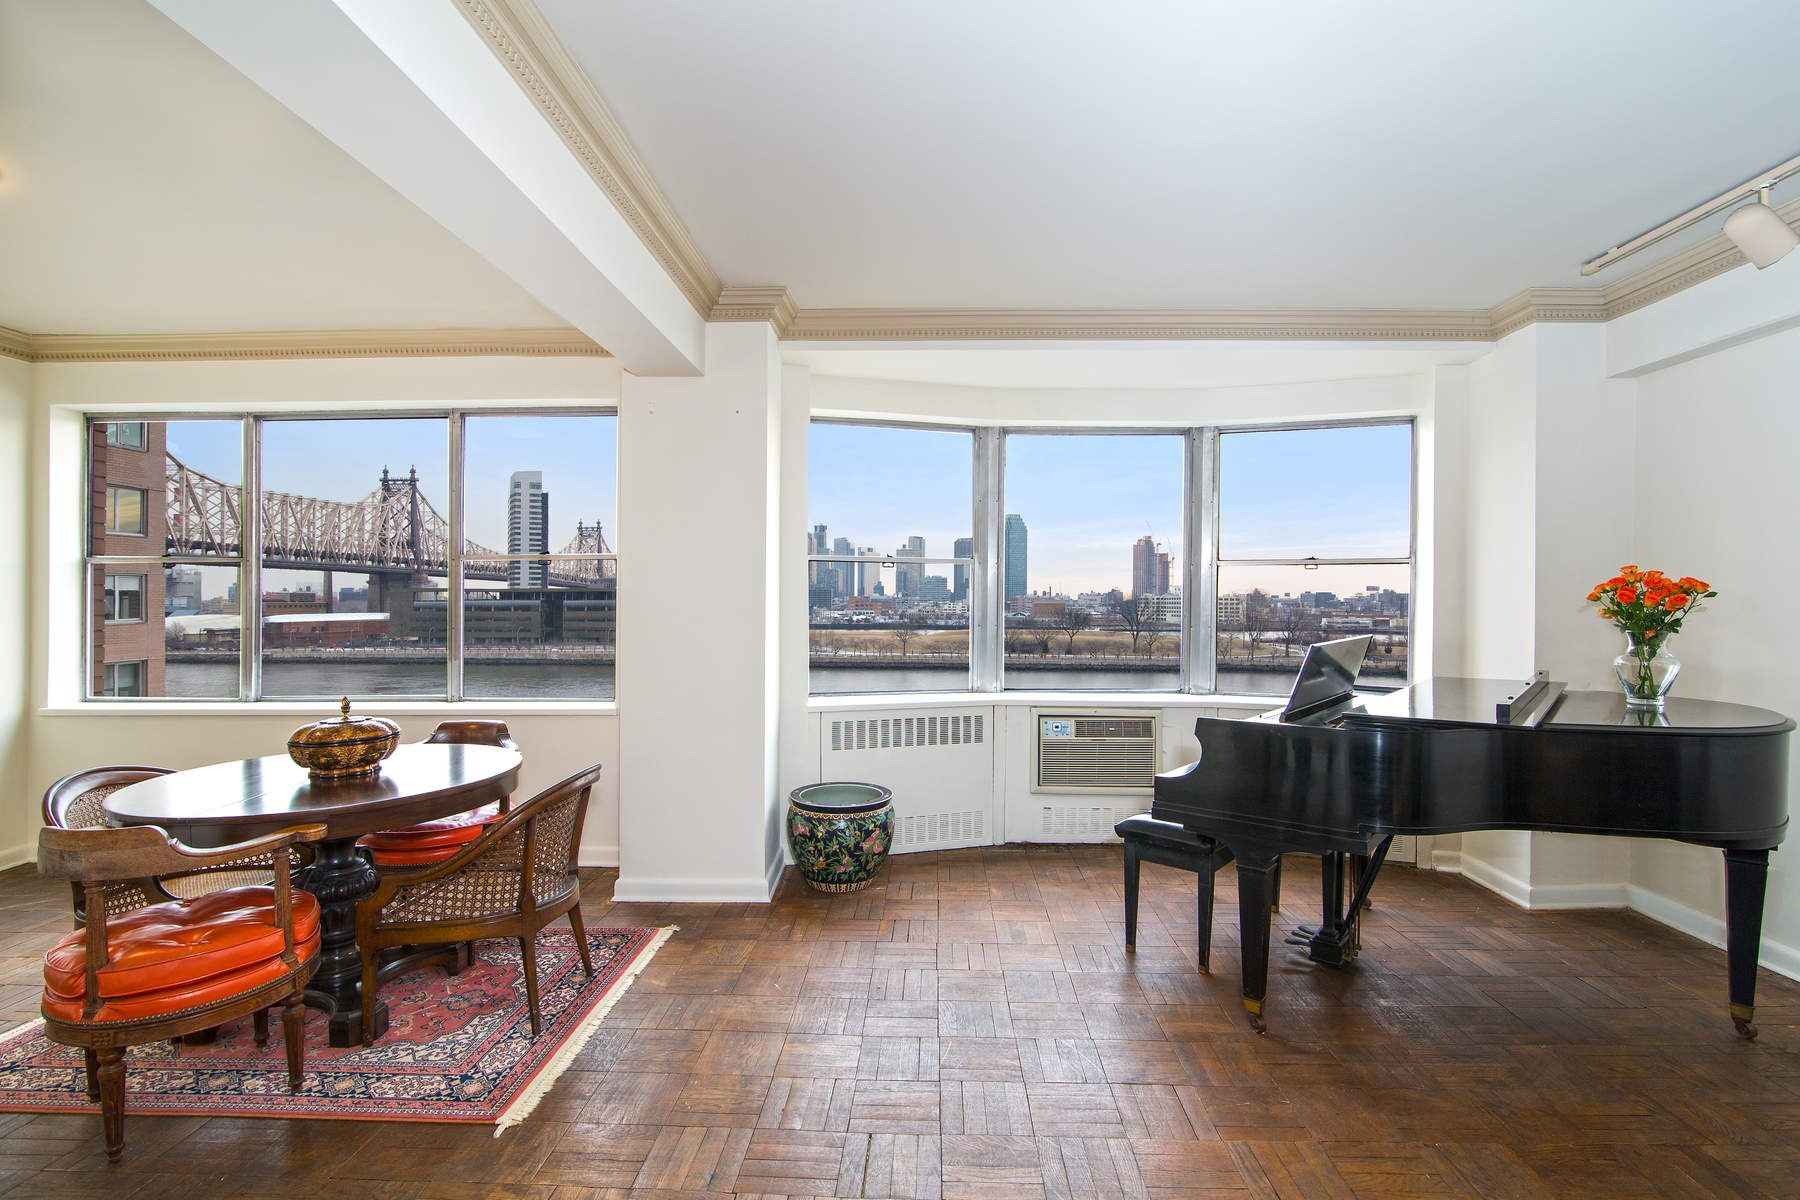 Co-op for Sale at Gracious 2 BR w/ Captivating River Views 25 Sutton Place South Apt 5M, Sutton Place, New York, New York, 10022 United States